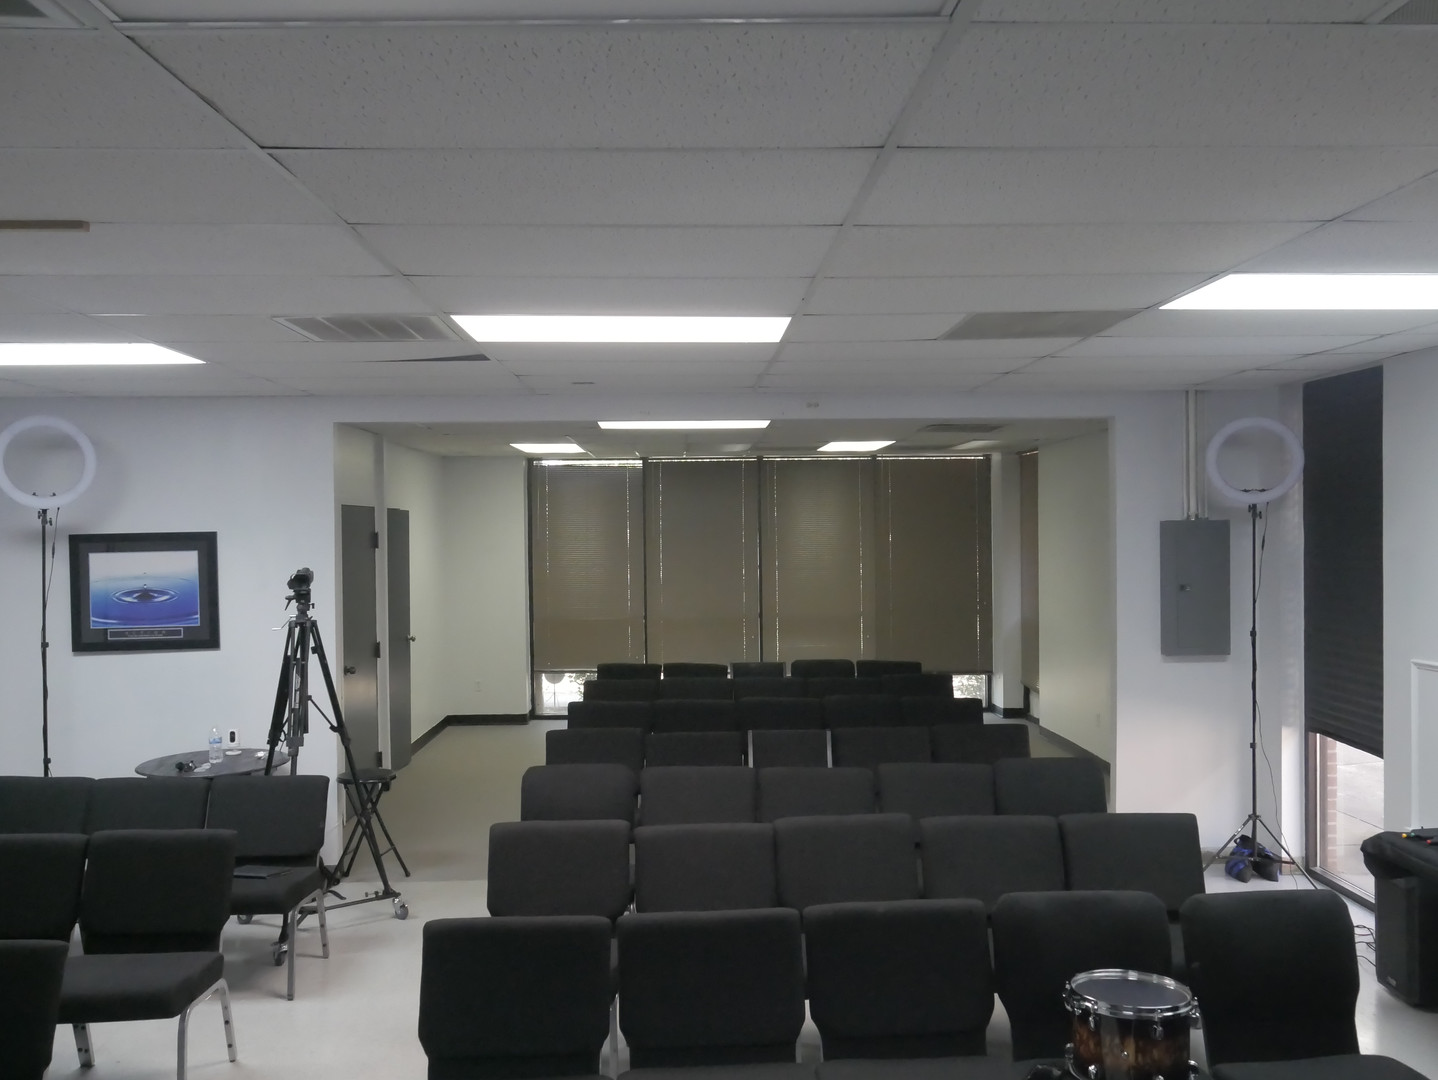 Event Space I_5.JPG